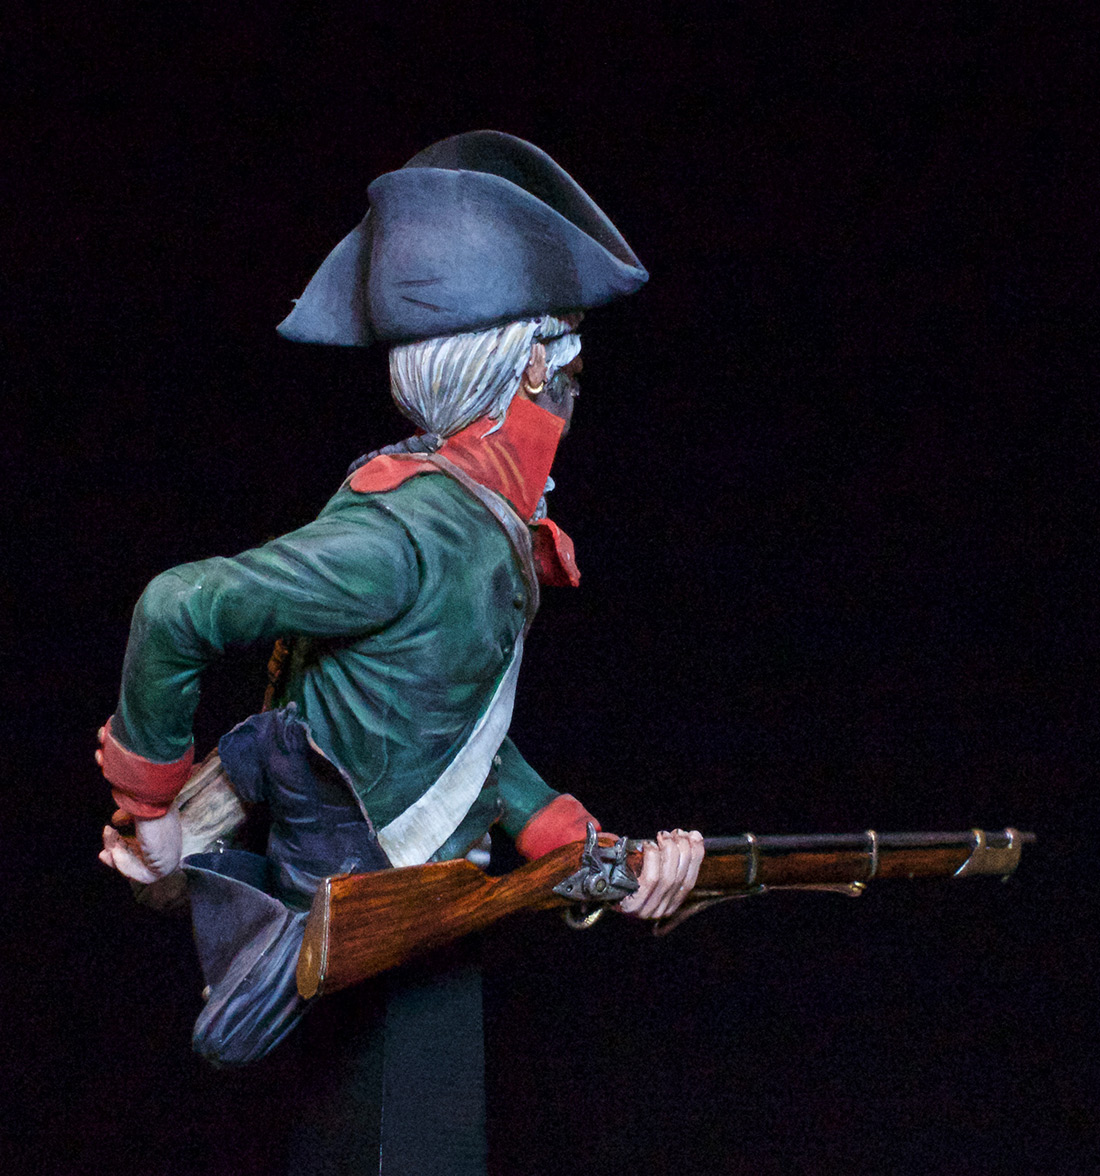 Figures: Russian infantryman, 1799, photo #4